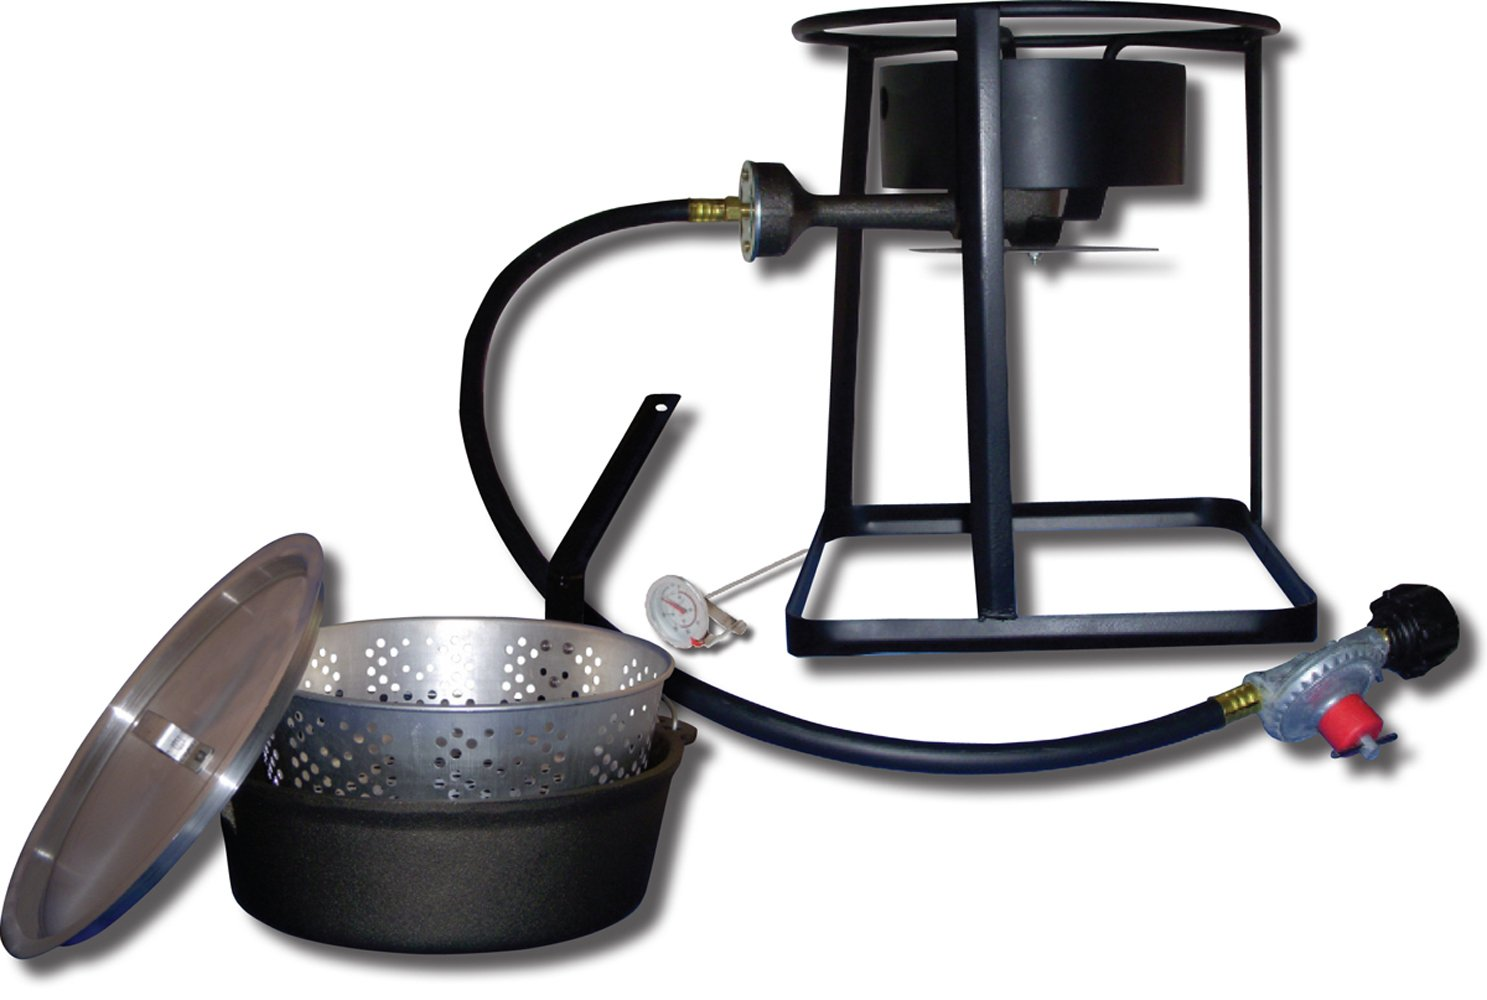 King Kooker 1650 16-Inch Outdoor Propane Burner with Cast Iron Dutch Oven by King Kooker